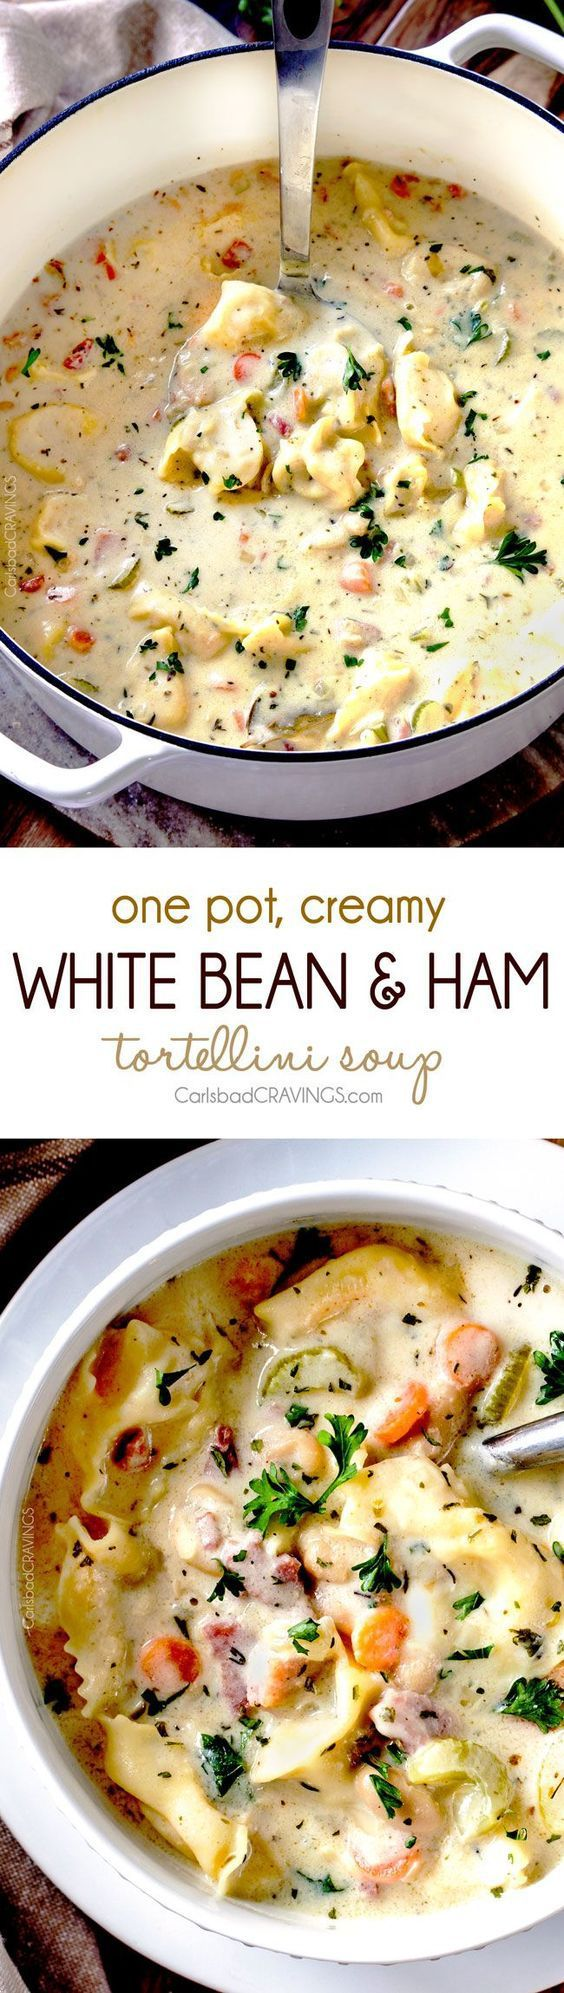 One Pot Creamy White Bean and Ham, Tortellini Soup Recipe | Carlsbad Cravings - The Best Easy One Pot Pasta Family Dinner Recipes #onepotpasta #onepotmeals #pastarecipes #onepotpastarecipes #onepotrecipes #mealprep #pasta #simplefamilymeals #simplefamilyrecipes #simplerecipes